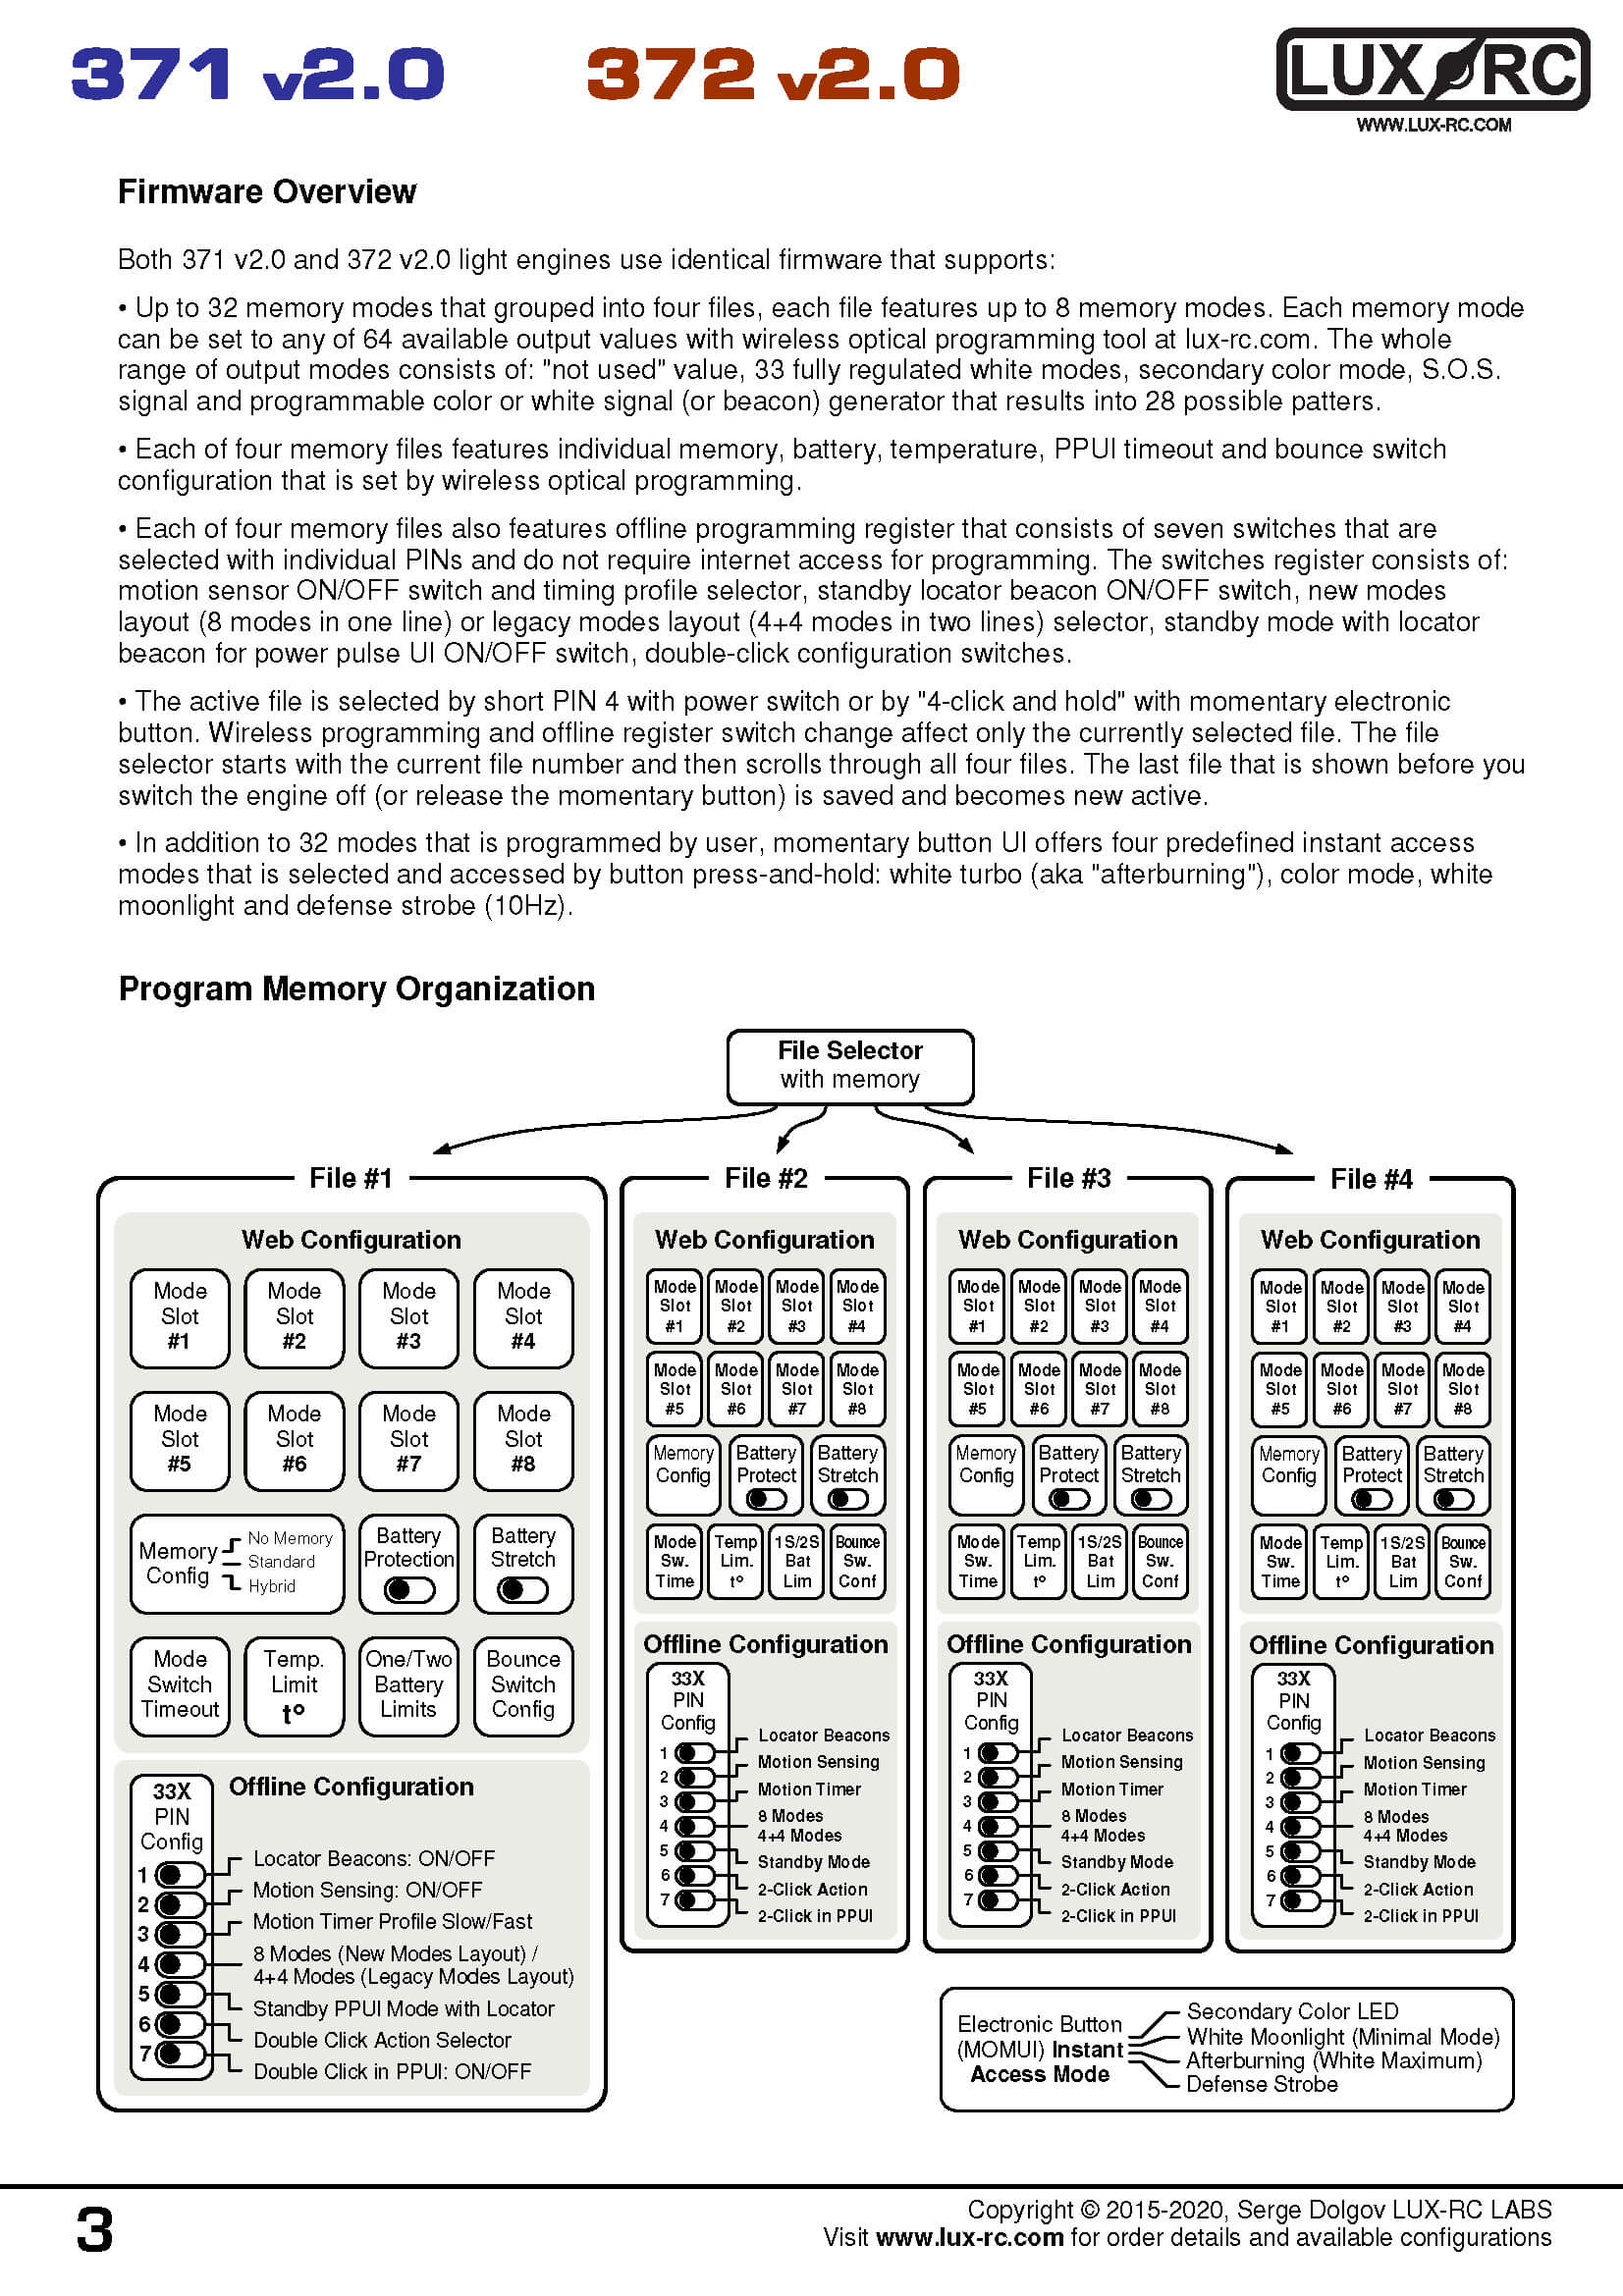 lux-rc 371d v2.0 manual in image format page 3